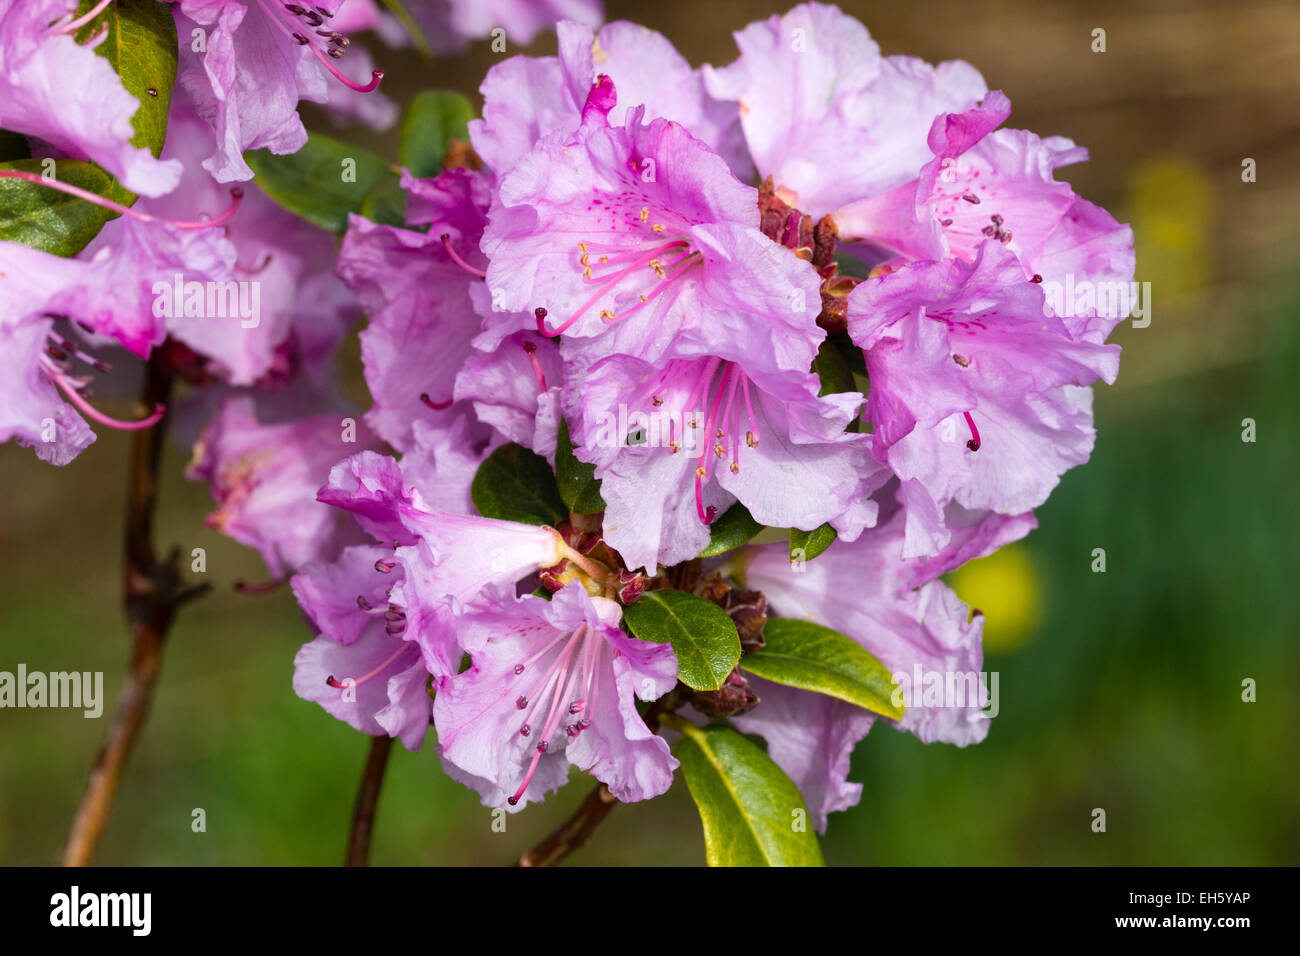 early-spring-flowers-of-the-moupinense-x-dauricum-hybrid-rhododendron-EH5YAP.jpg